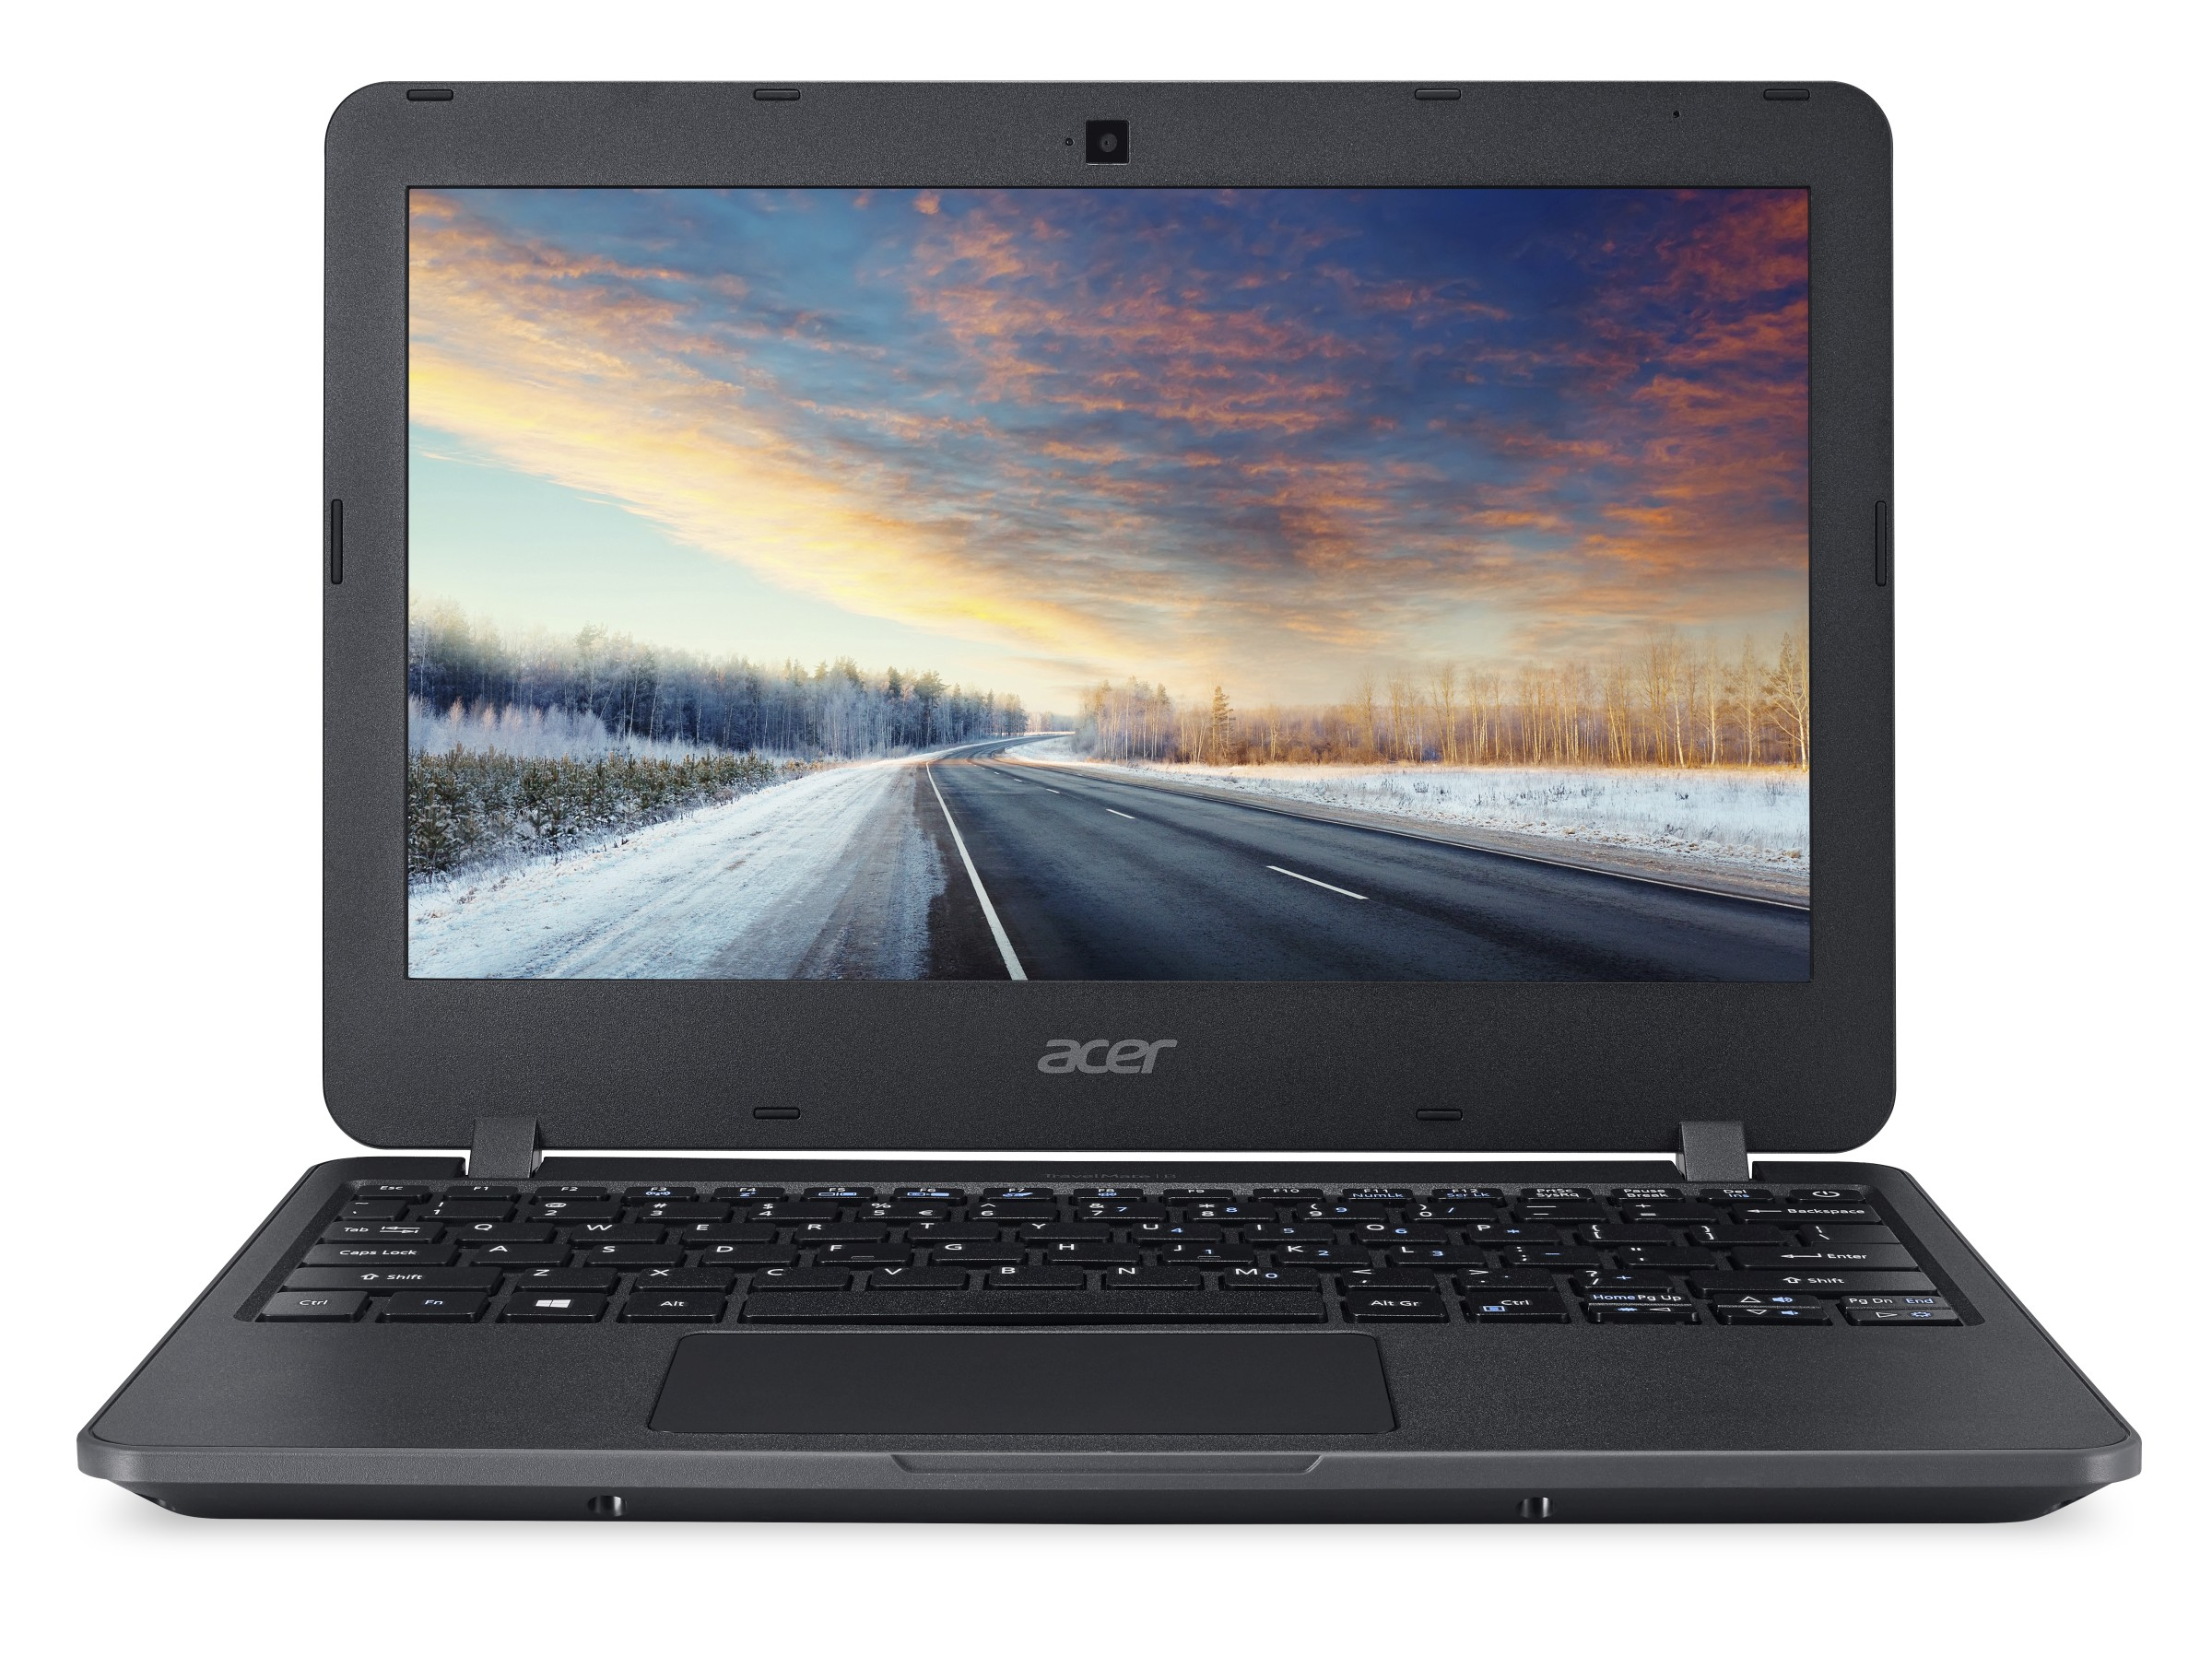 "DEMO Acer TravelMate B117-M-P7PJ Pentium N3710/4GB+N/64 GB eMMC+N/A/HD Graphics/11.6"" HD matný/BT/W10 S/Black"